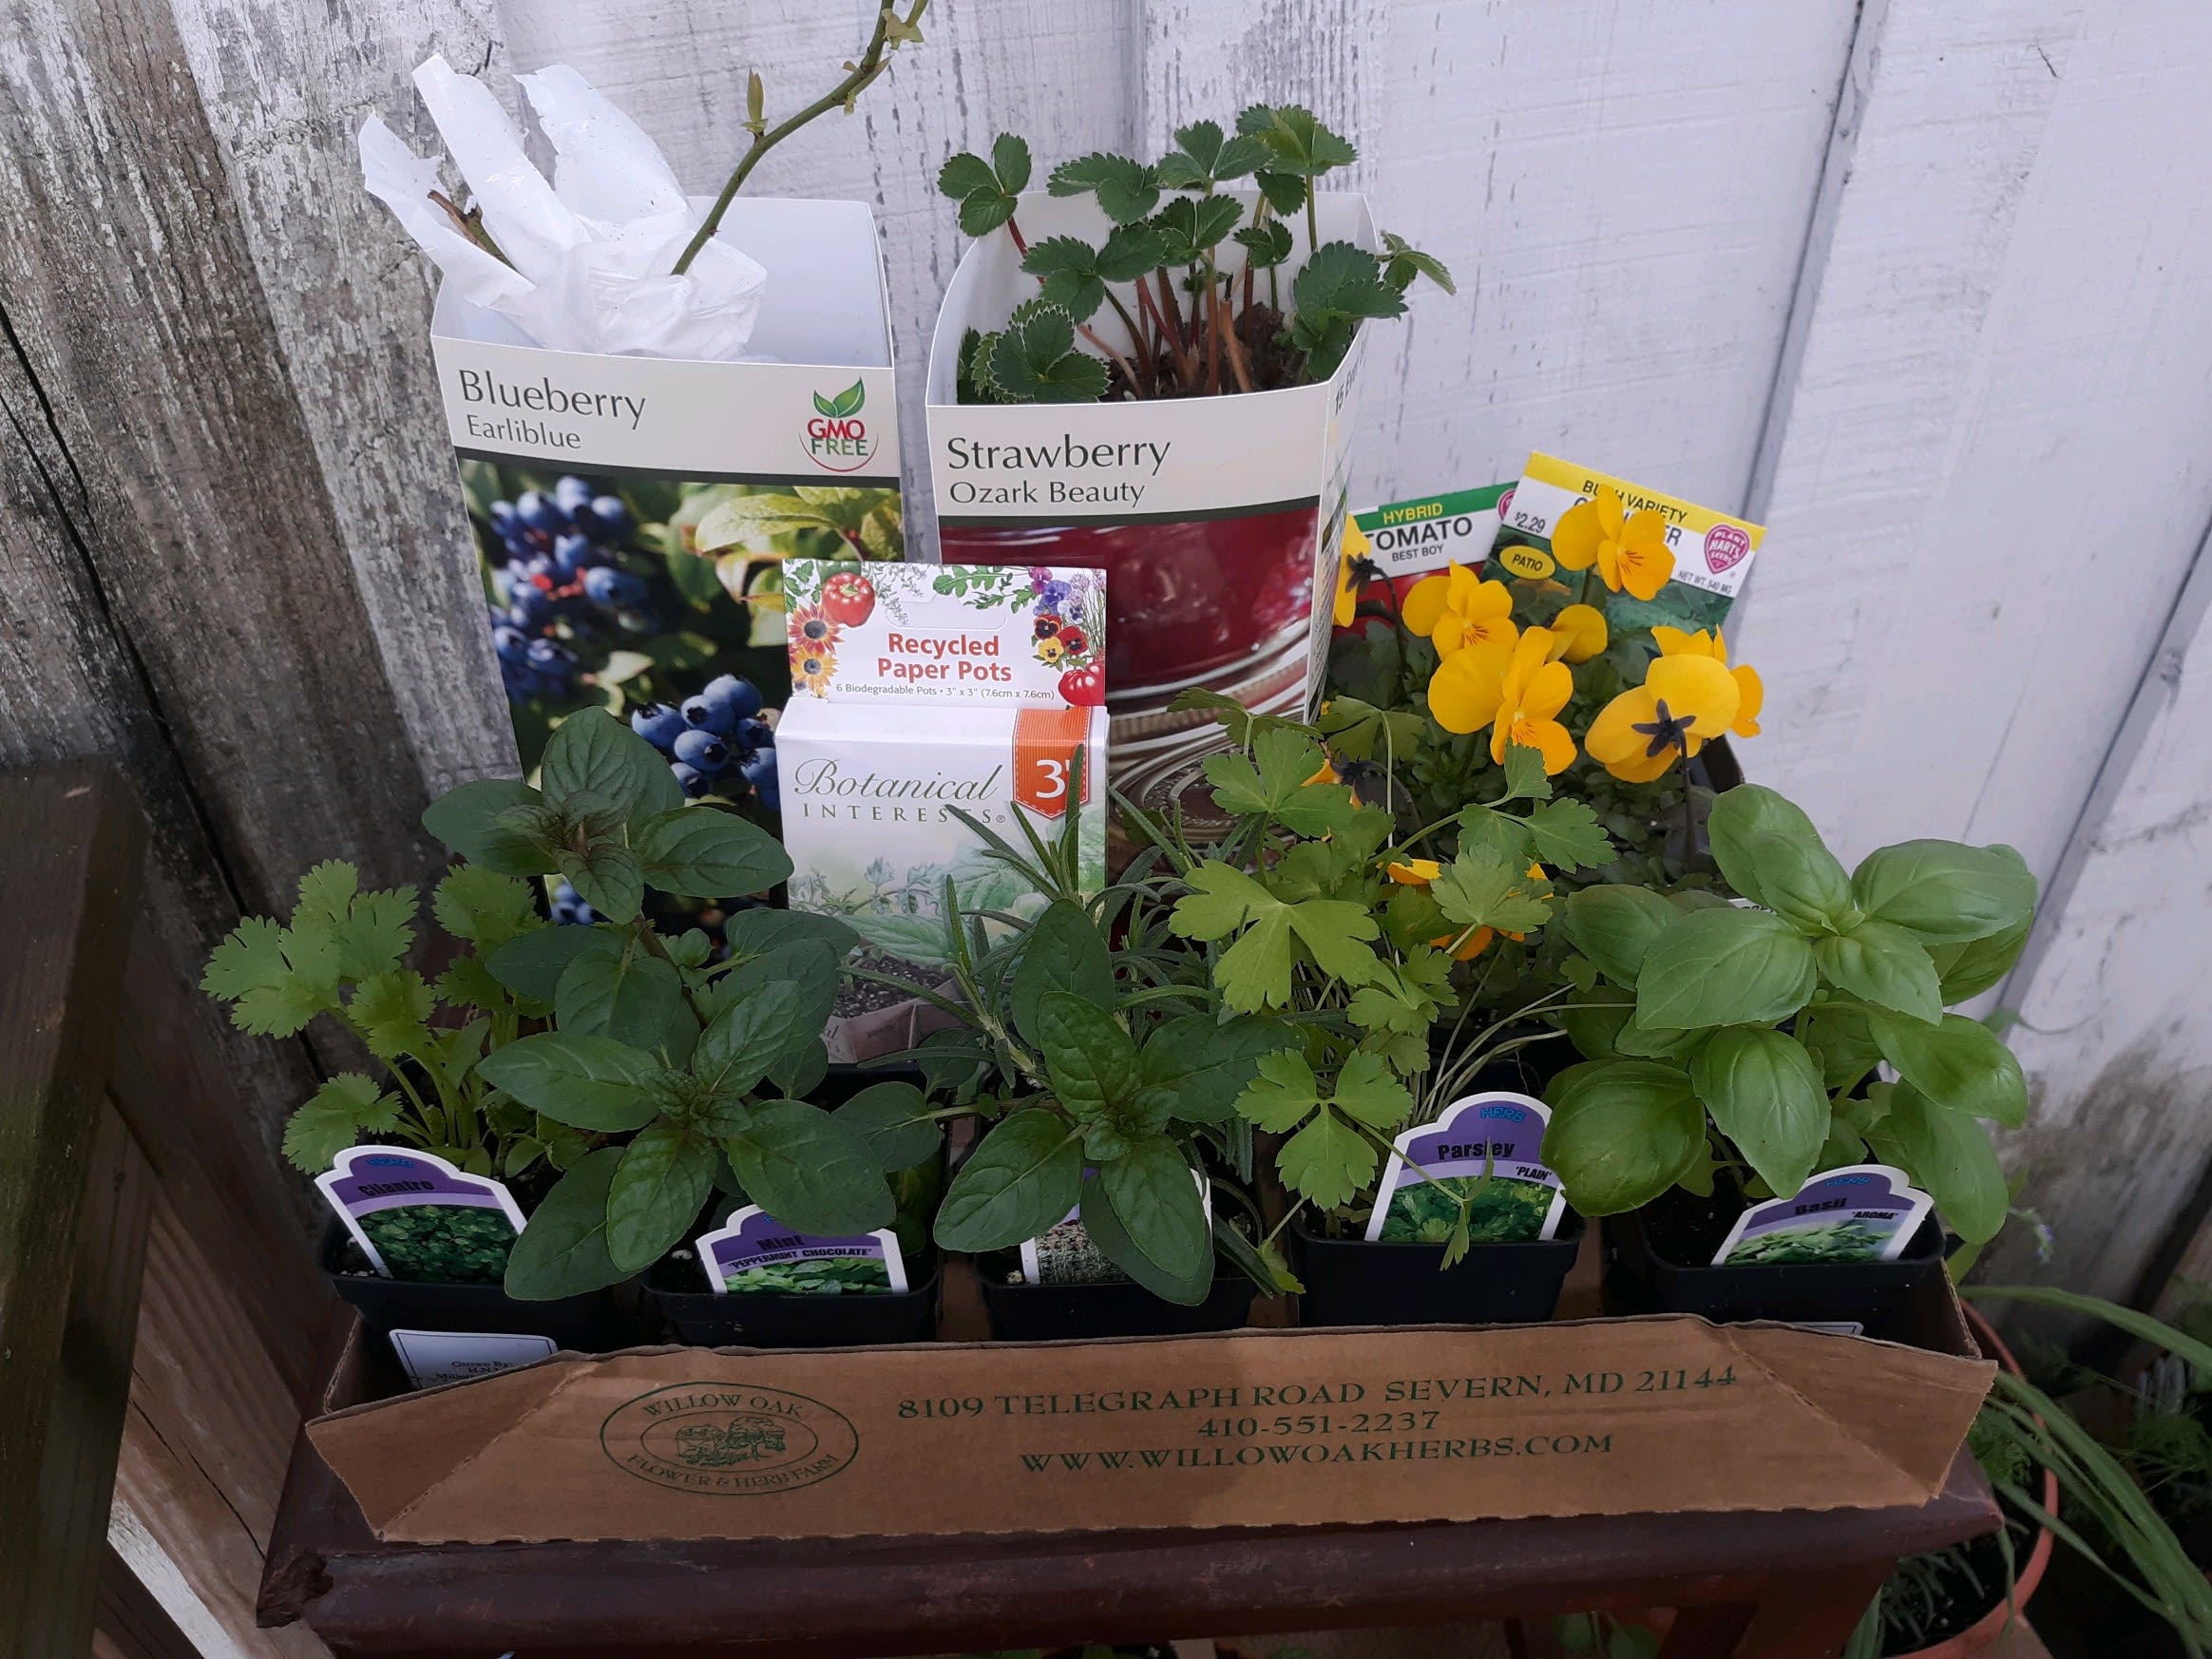 Food Plants Seed Starting Kit Delivering The Joy Of Gardening